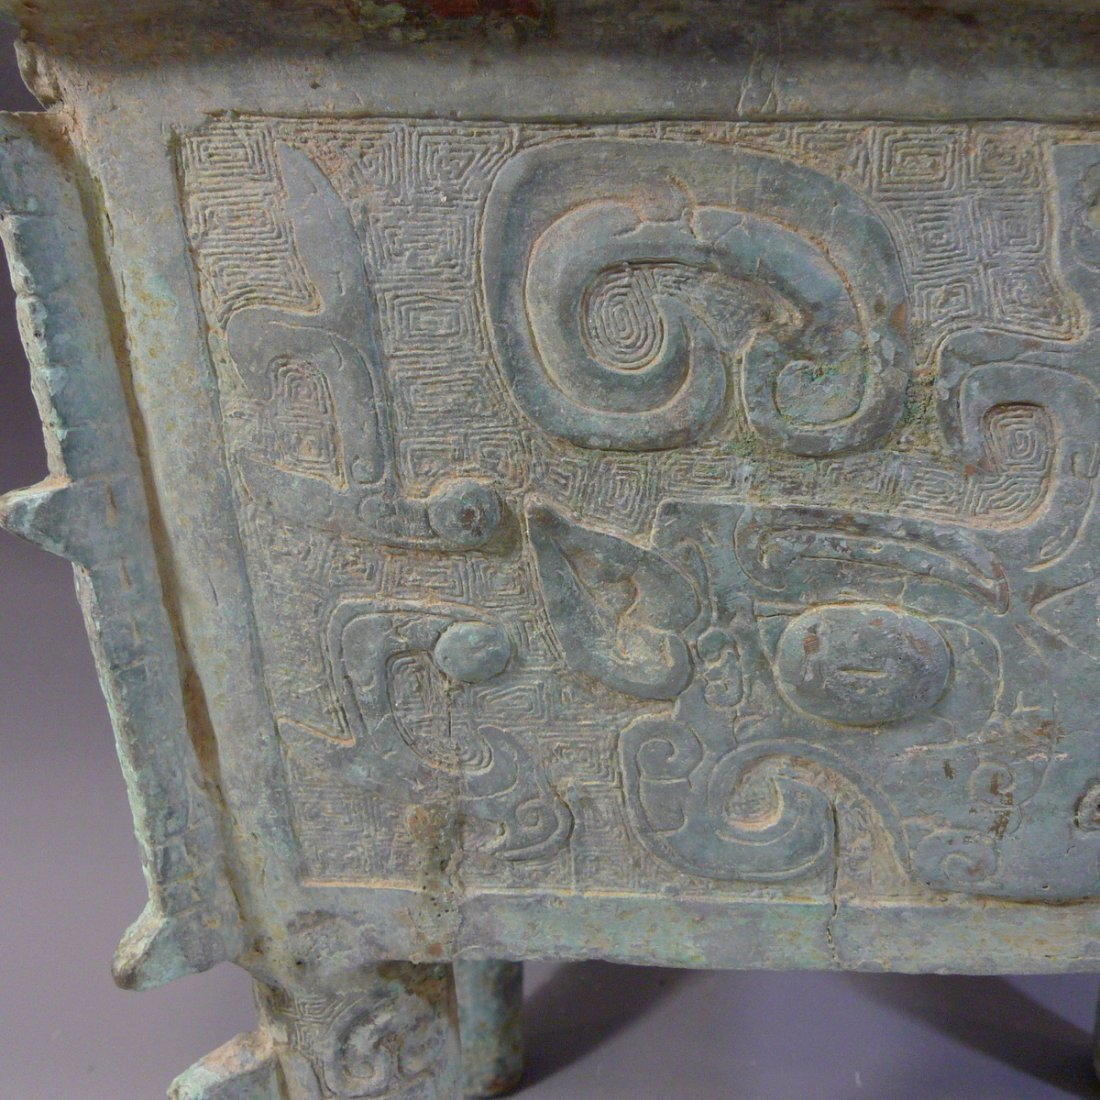 CHINESE ARCHAISTIC BRONZE DING SHANG STYLE - 4